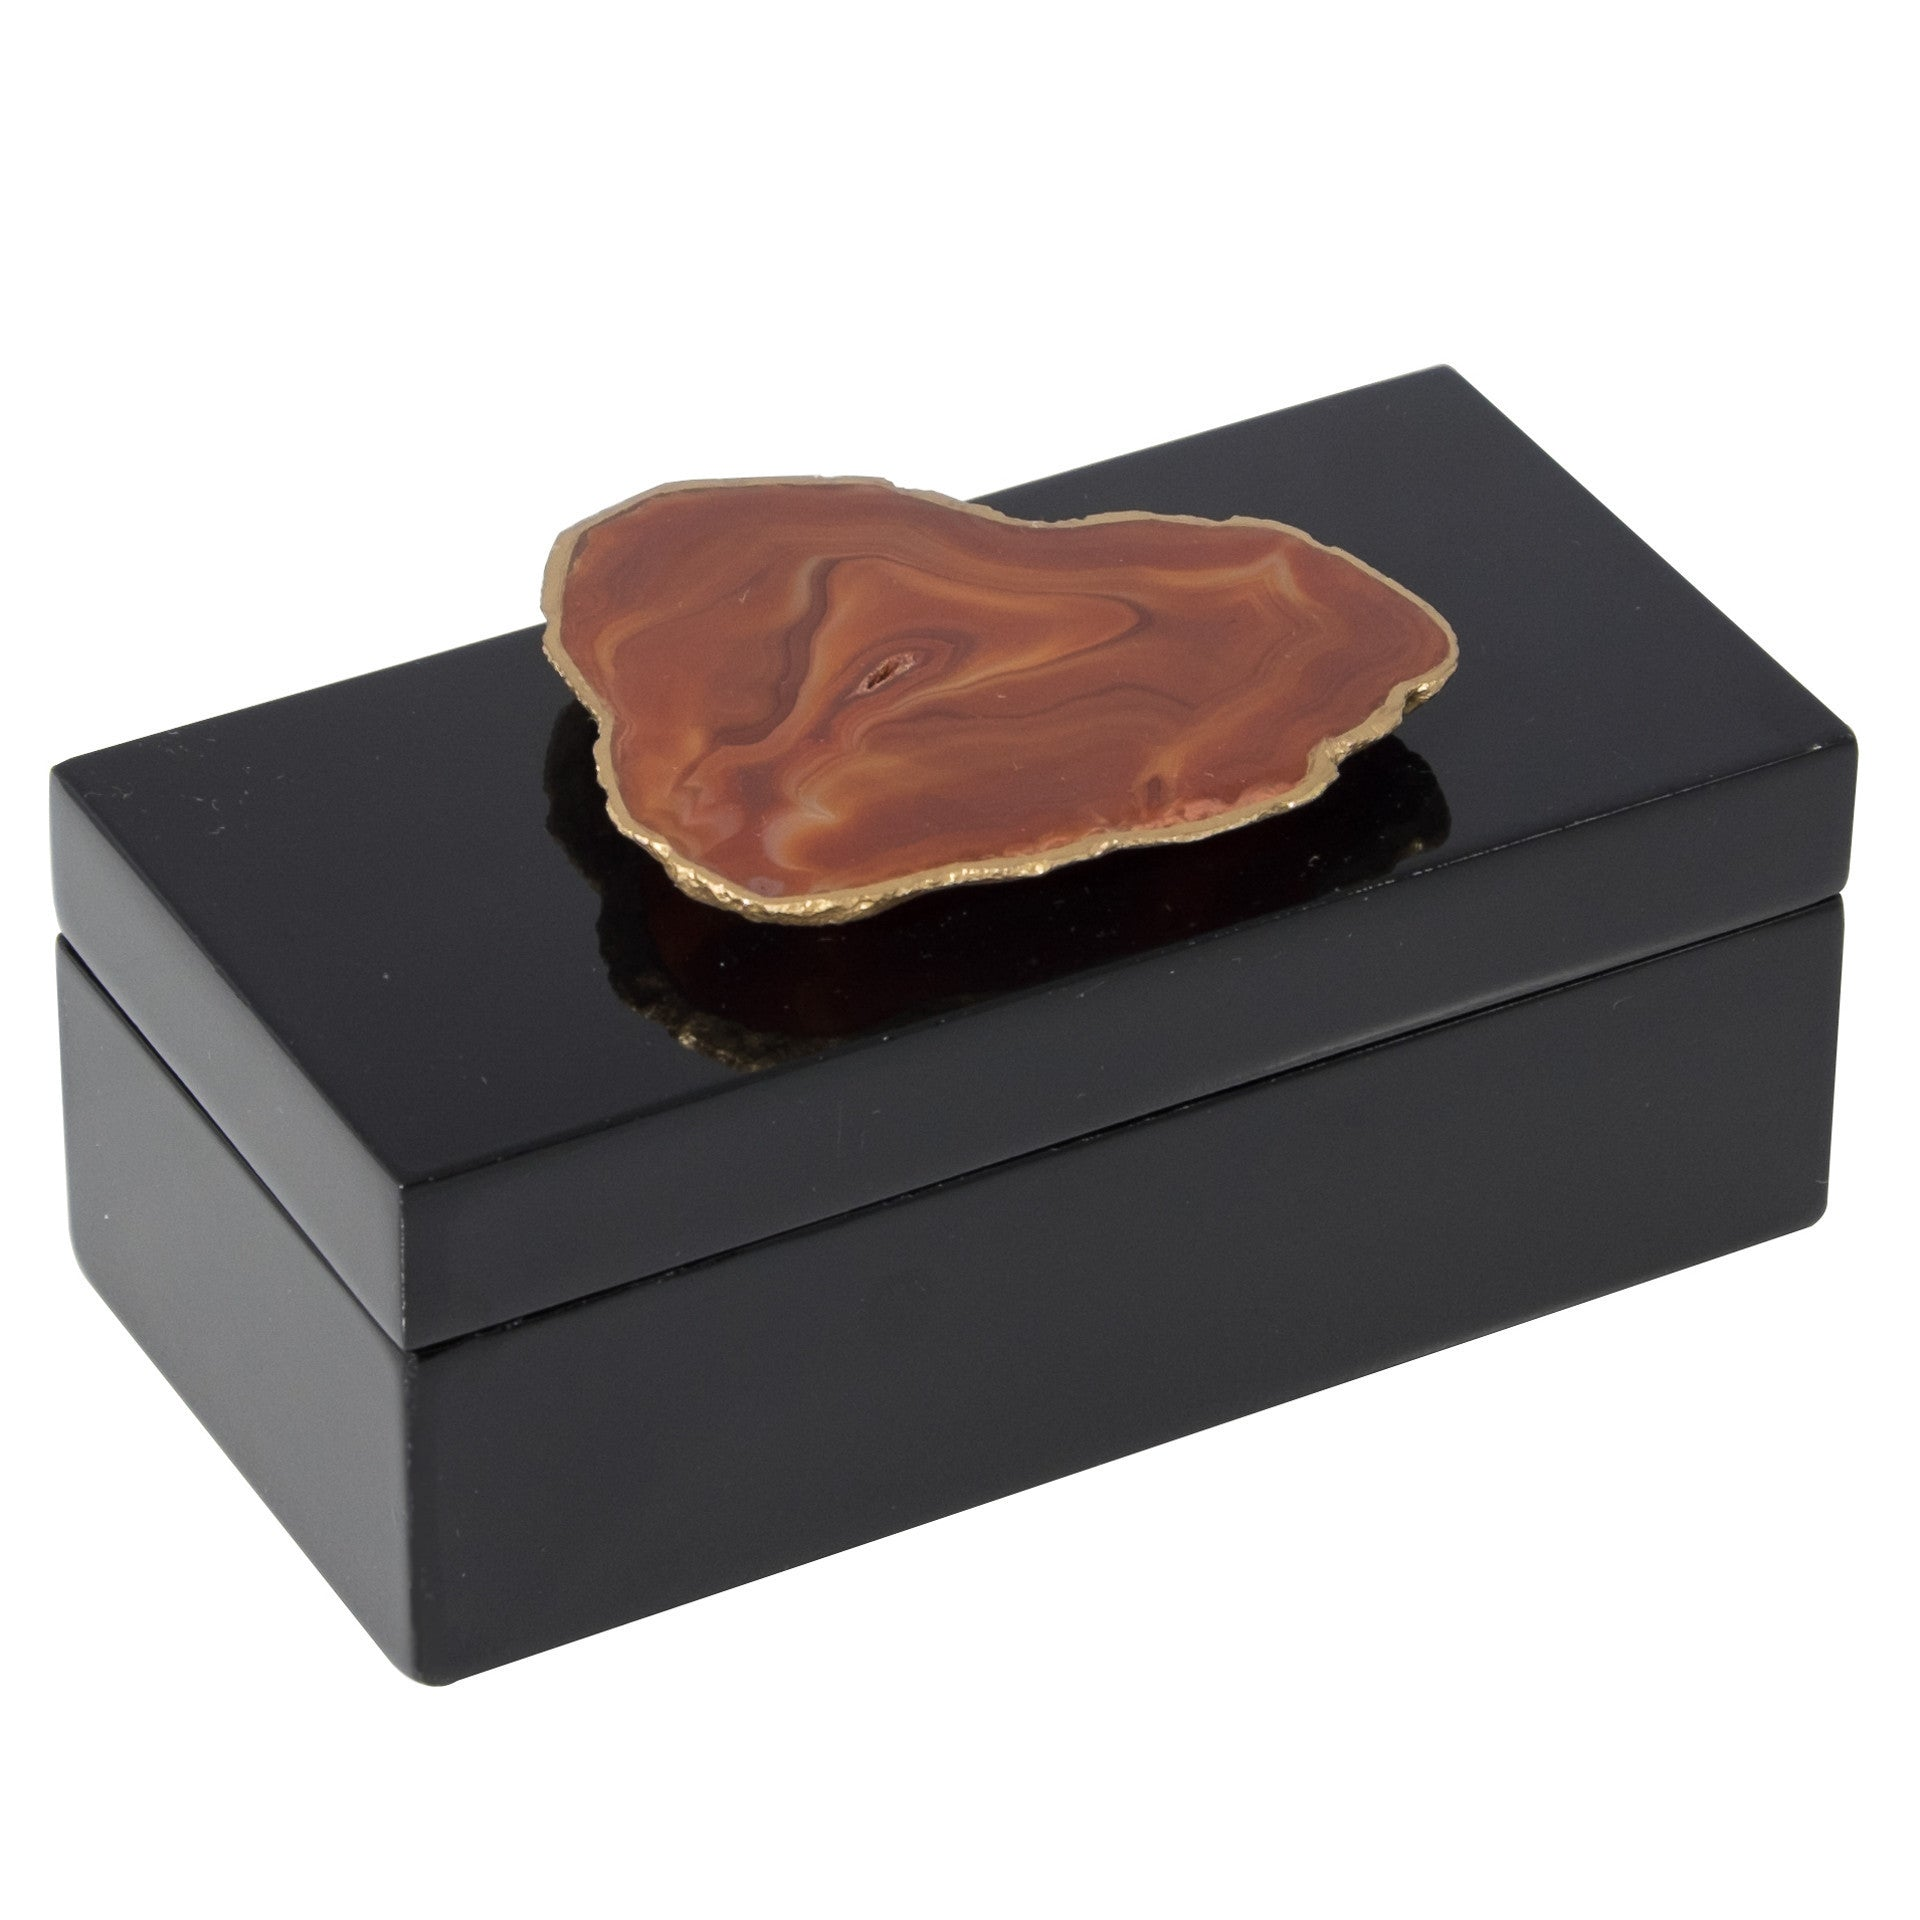 Medium Black Lacquer Box with Natural Agate